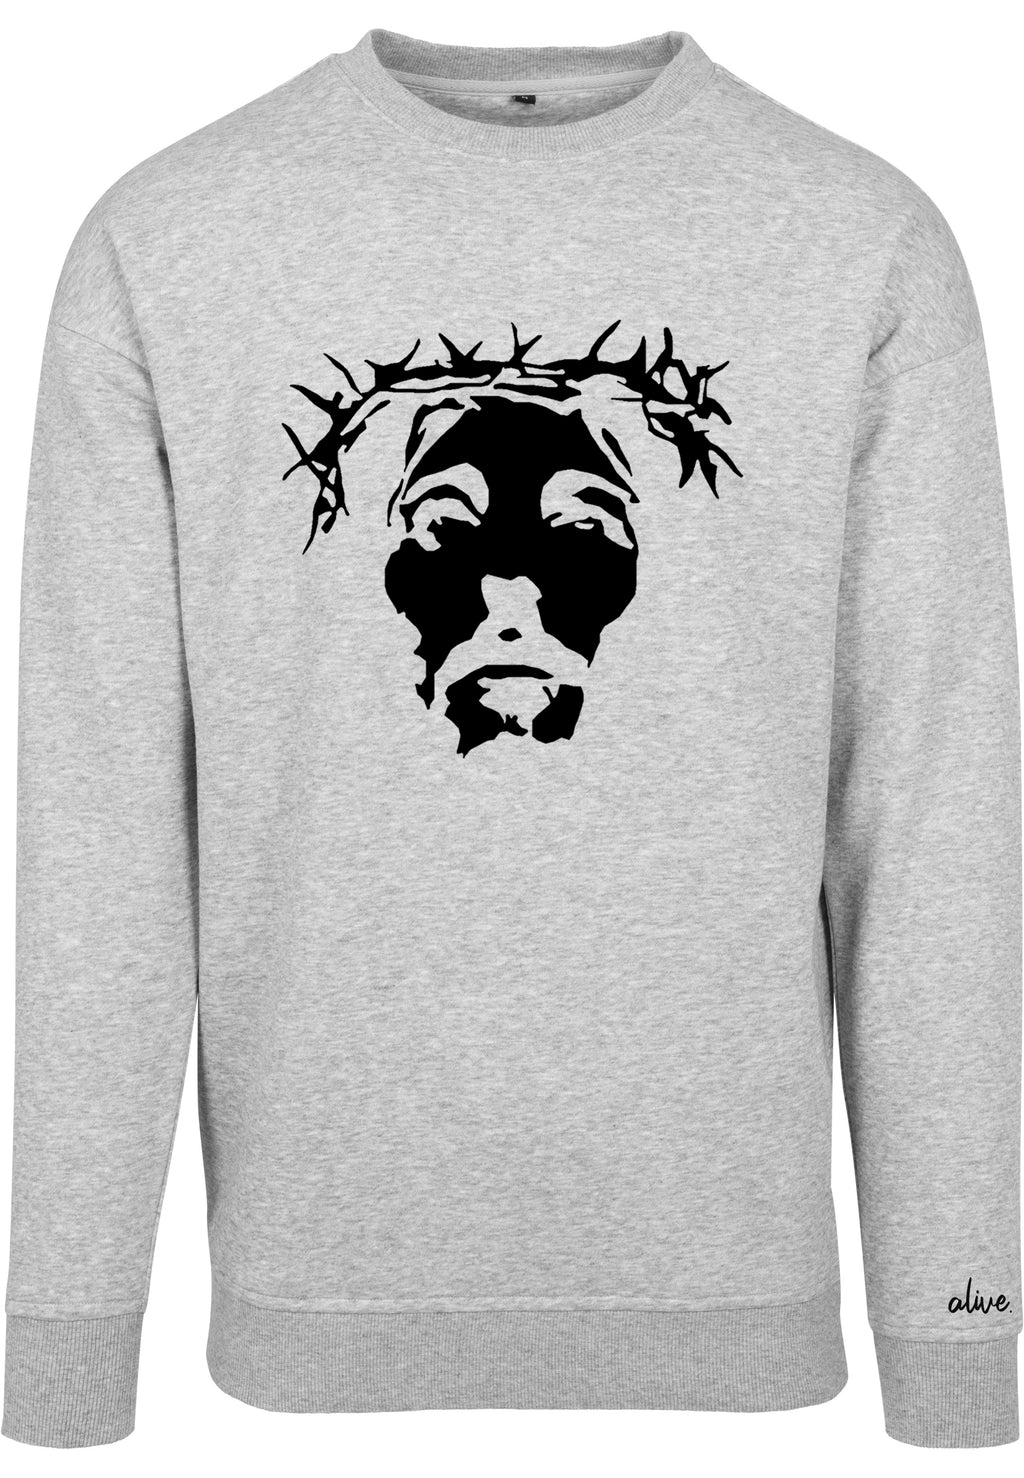 THE SAVIOUR Sweatshirt (Heather Grey with Black)